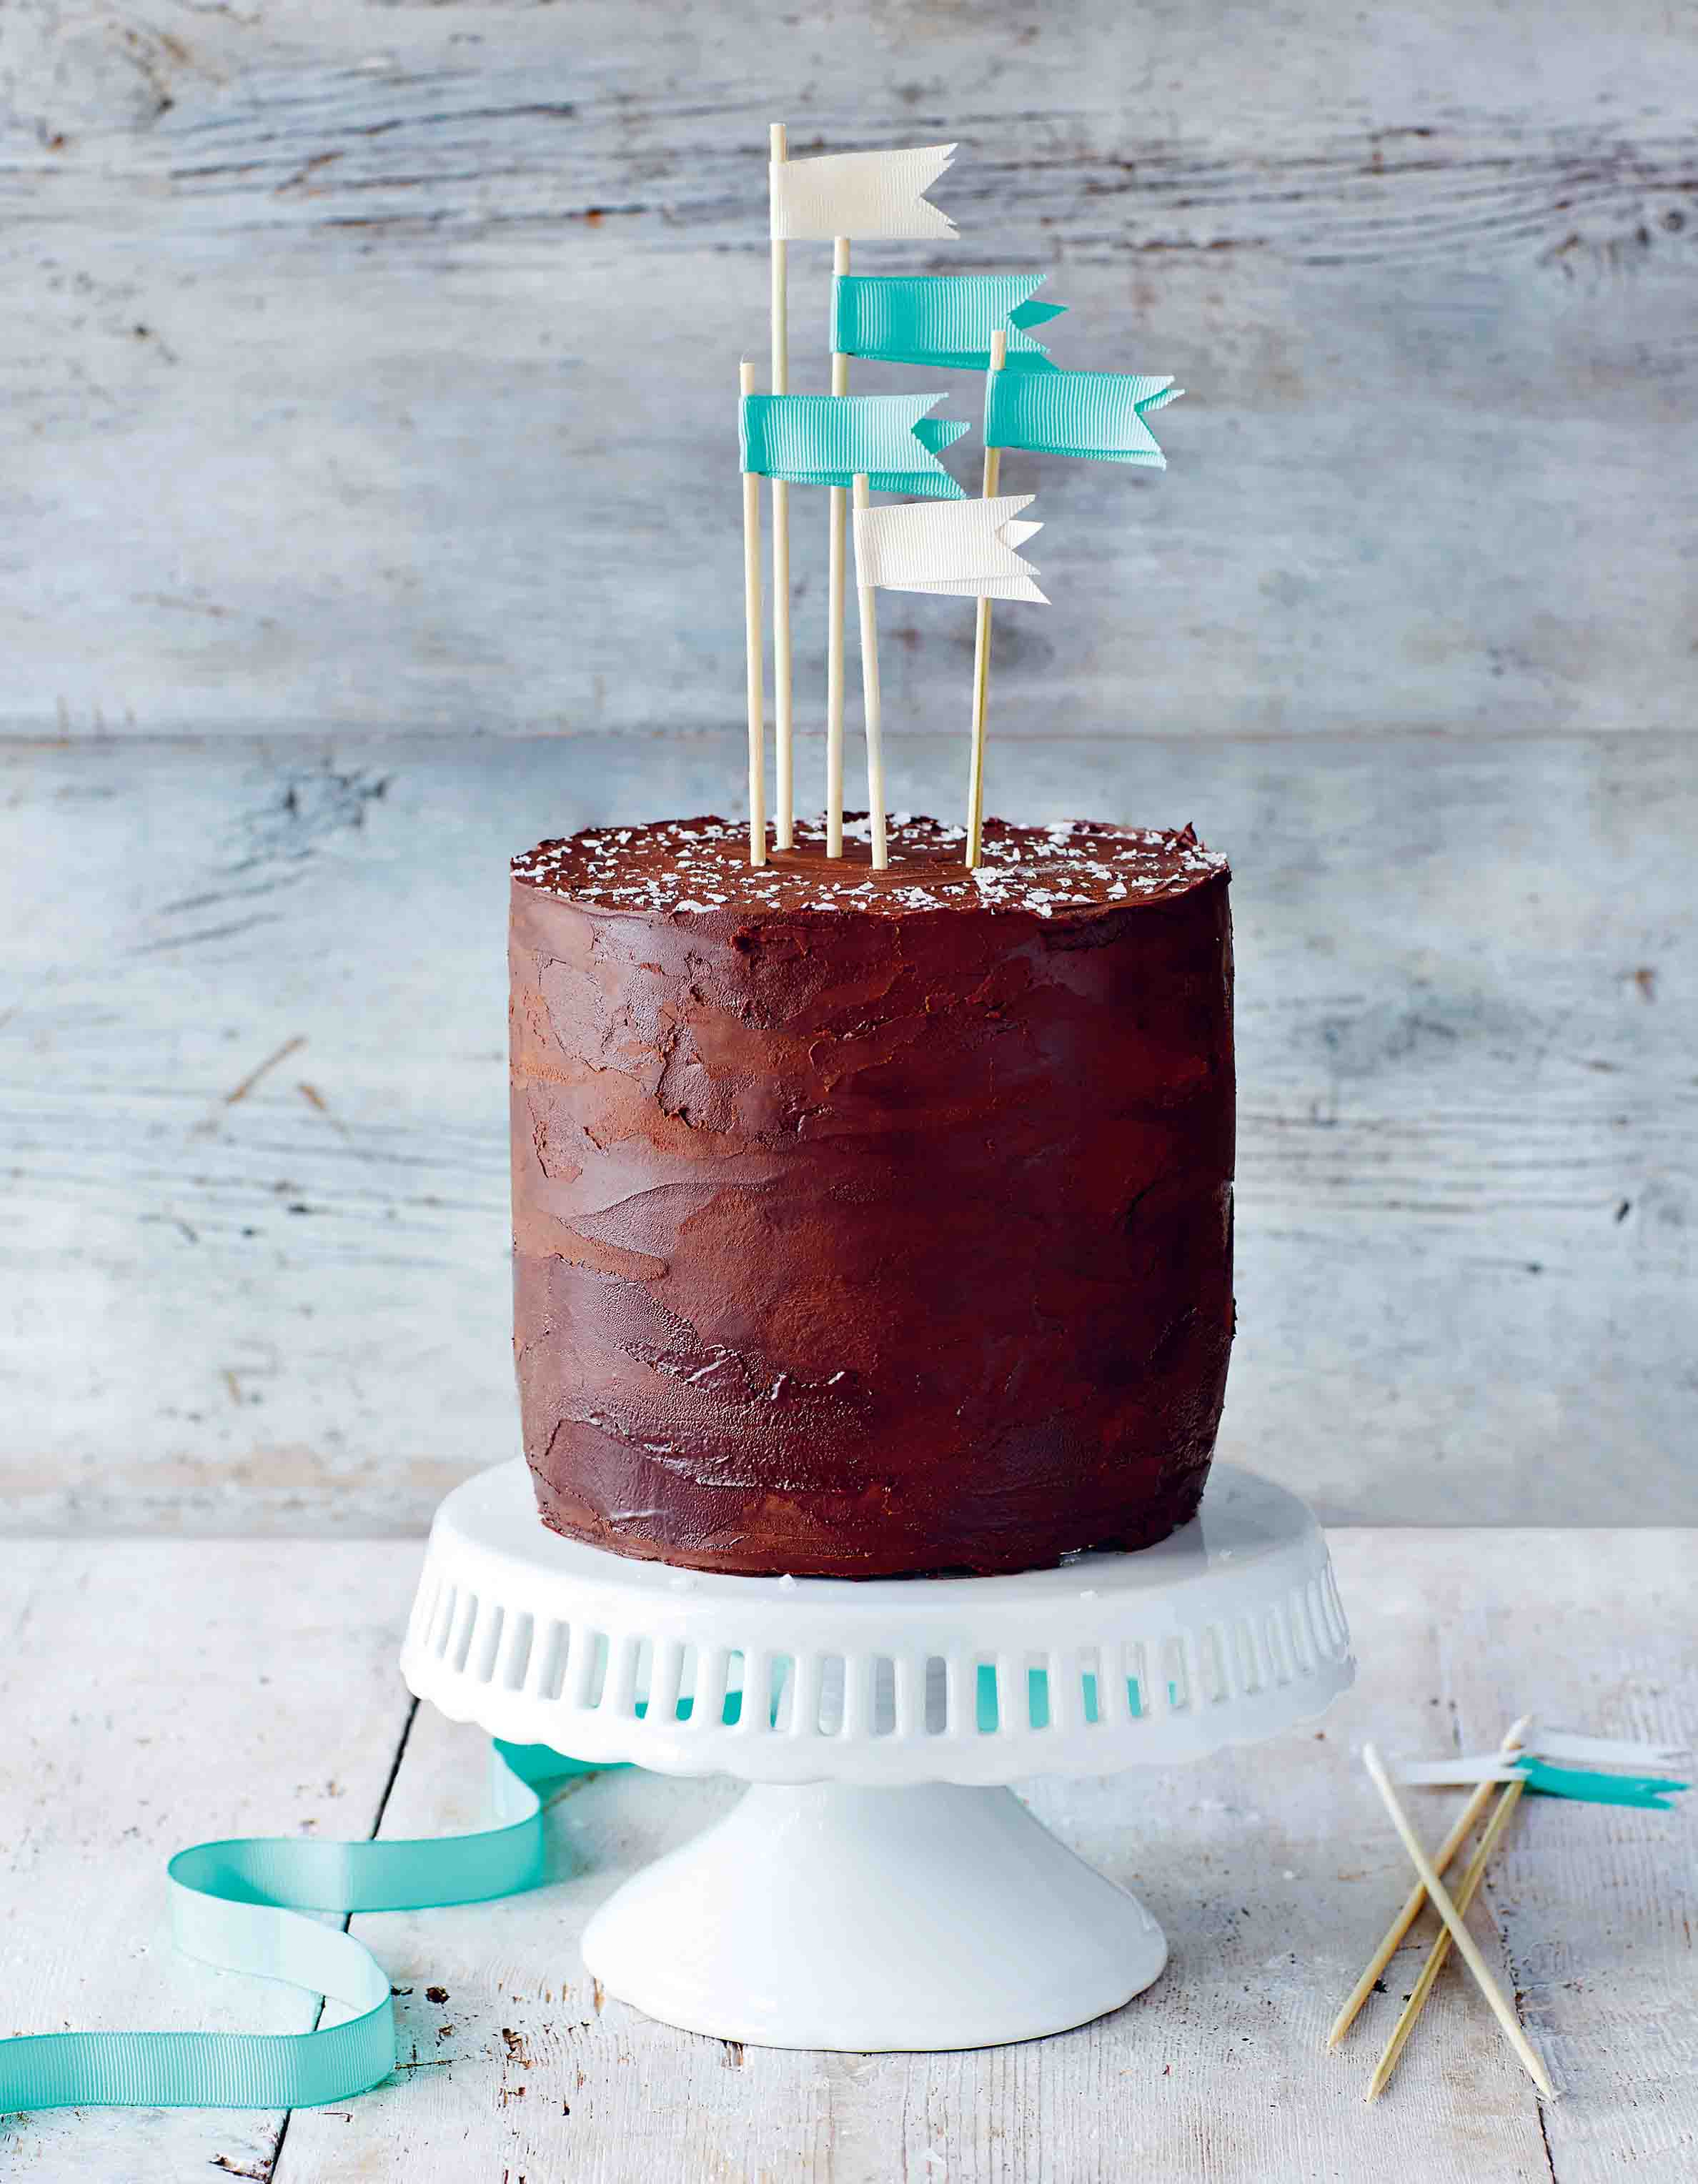 Sea-salted caramel chocolate cake